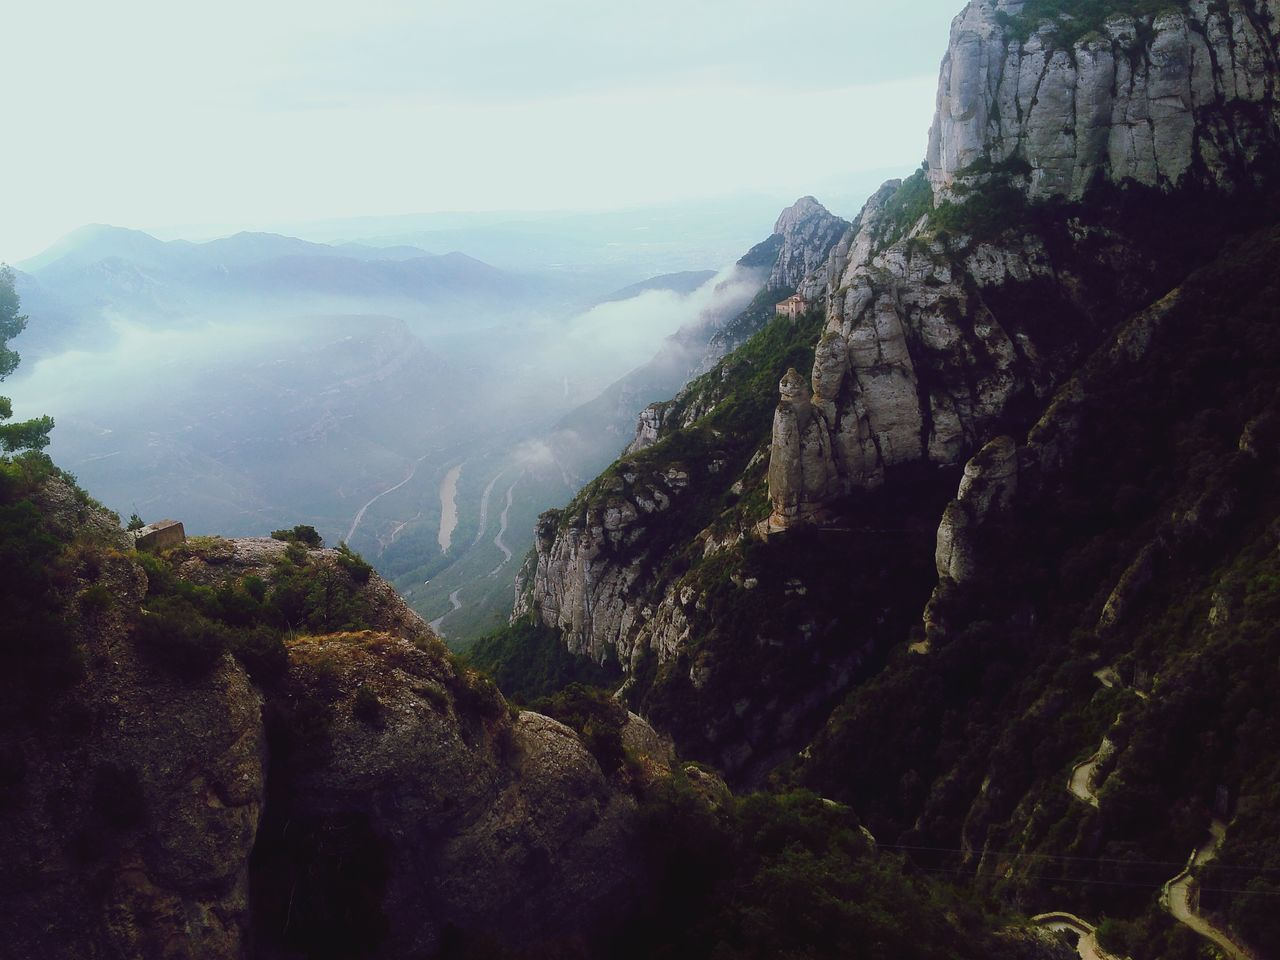 mountain, nature, beauty in nature, tranquil scene, tranquility, scenics, no people, day, cliff, landscape, outdoors, sky